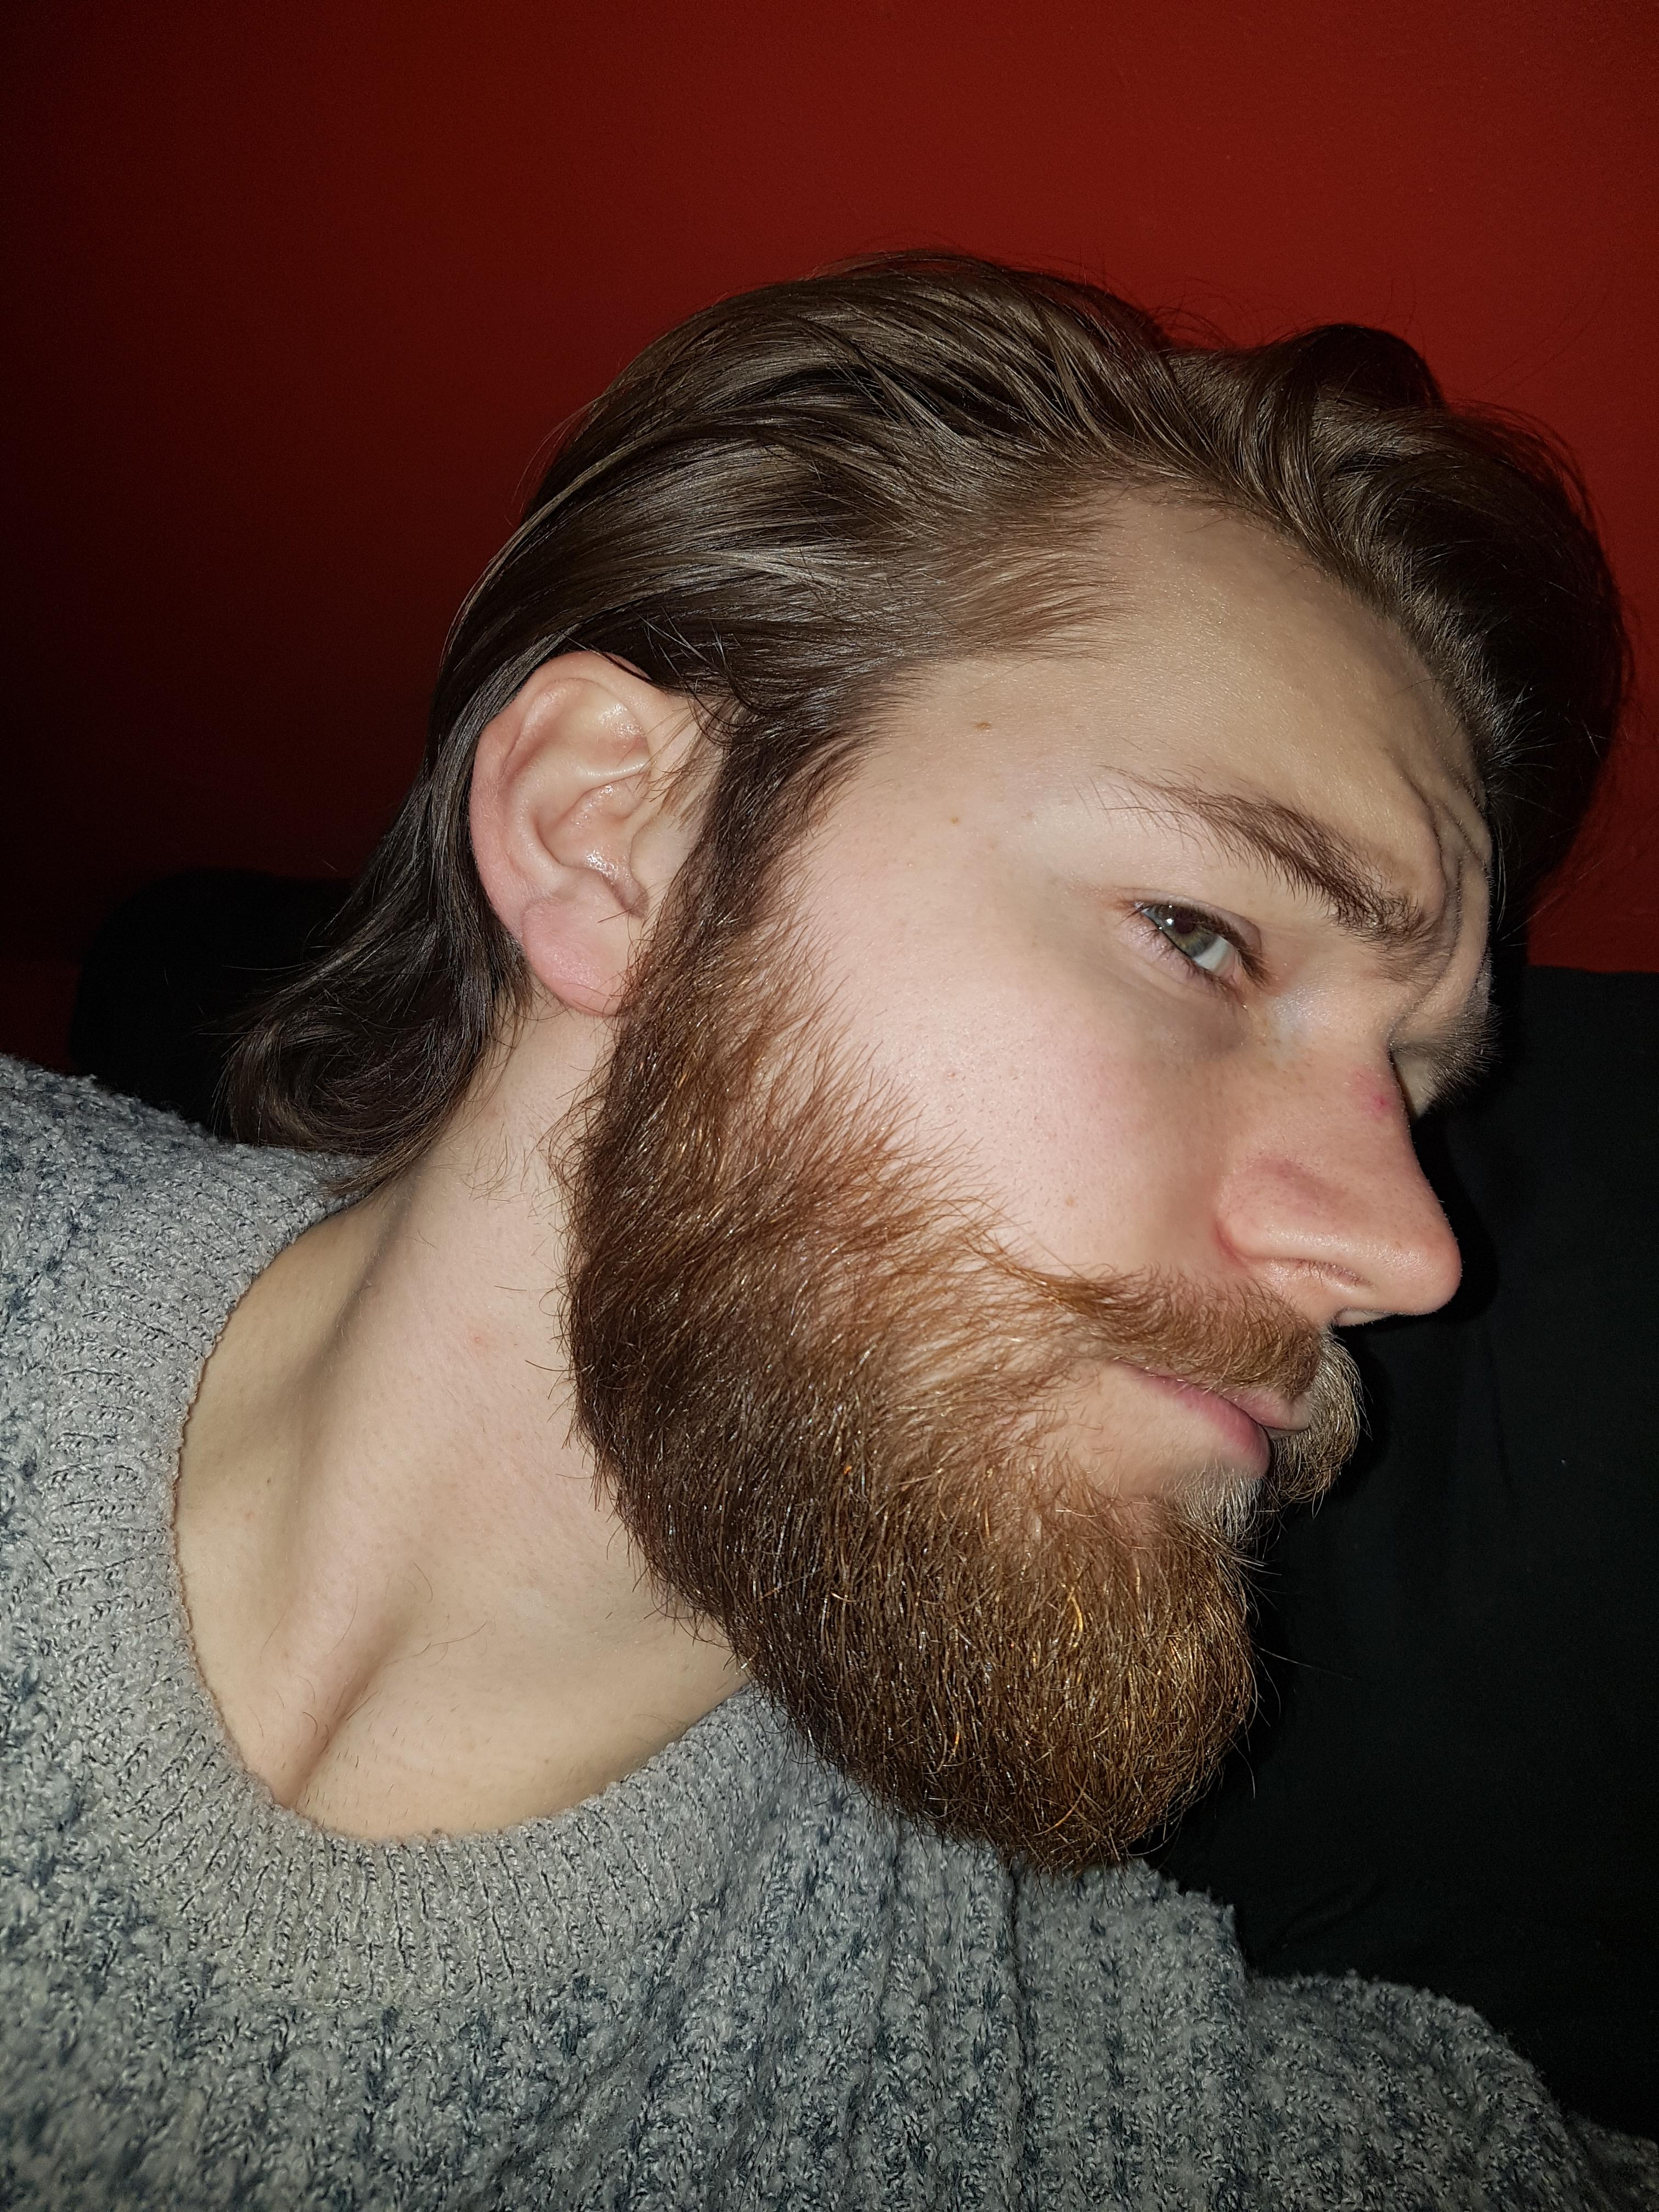 Y All Know Any Way To Make The Hair On The Cheeks Look Thicker Beards